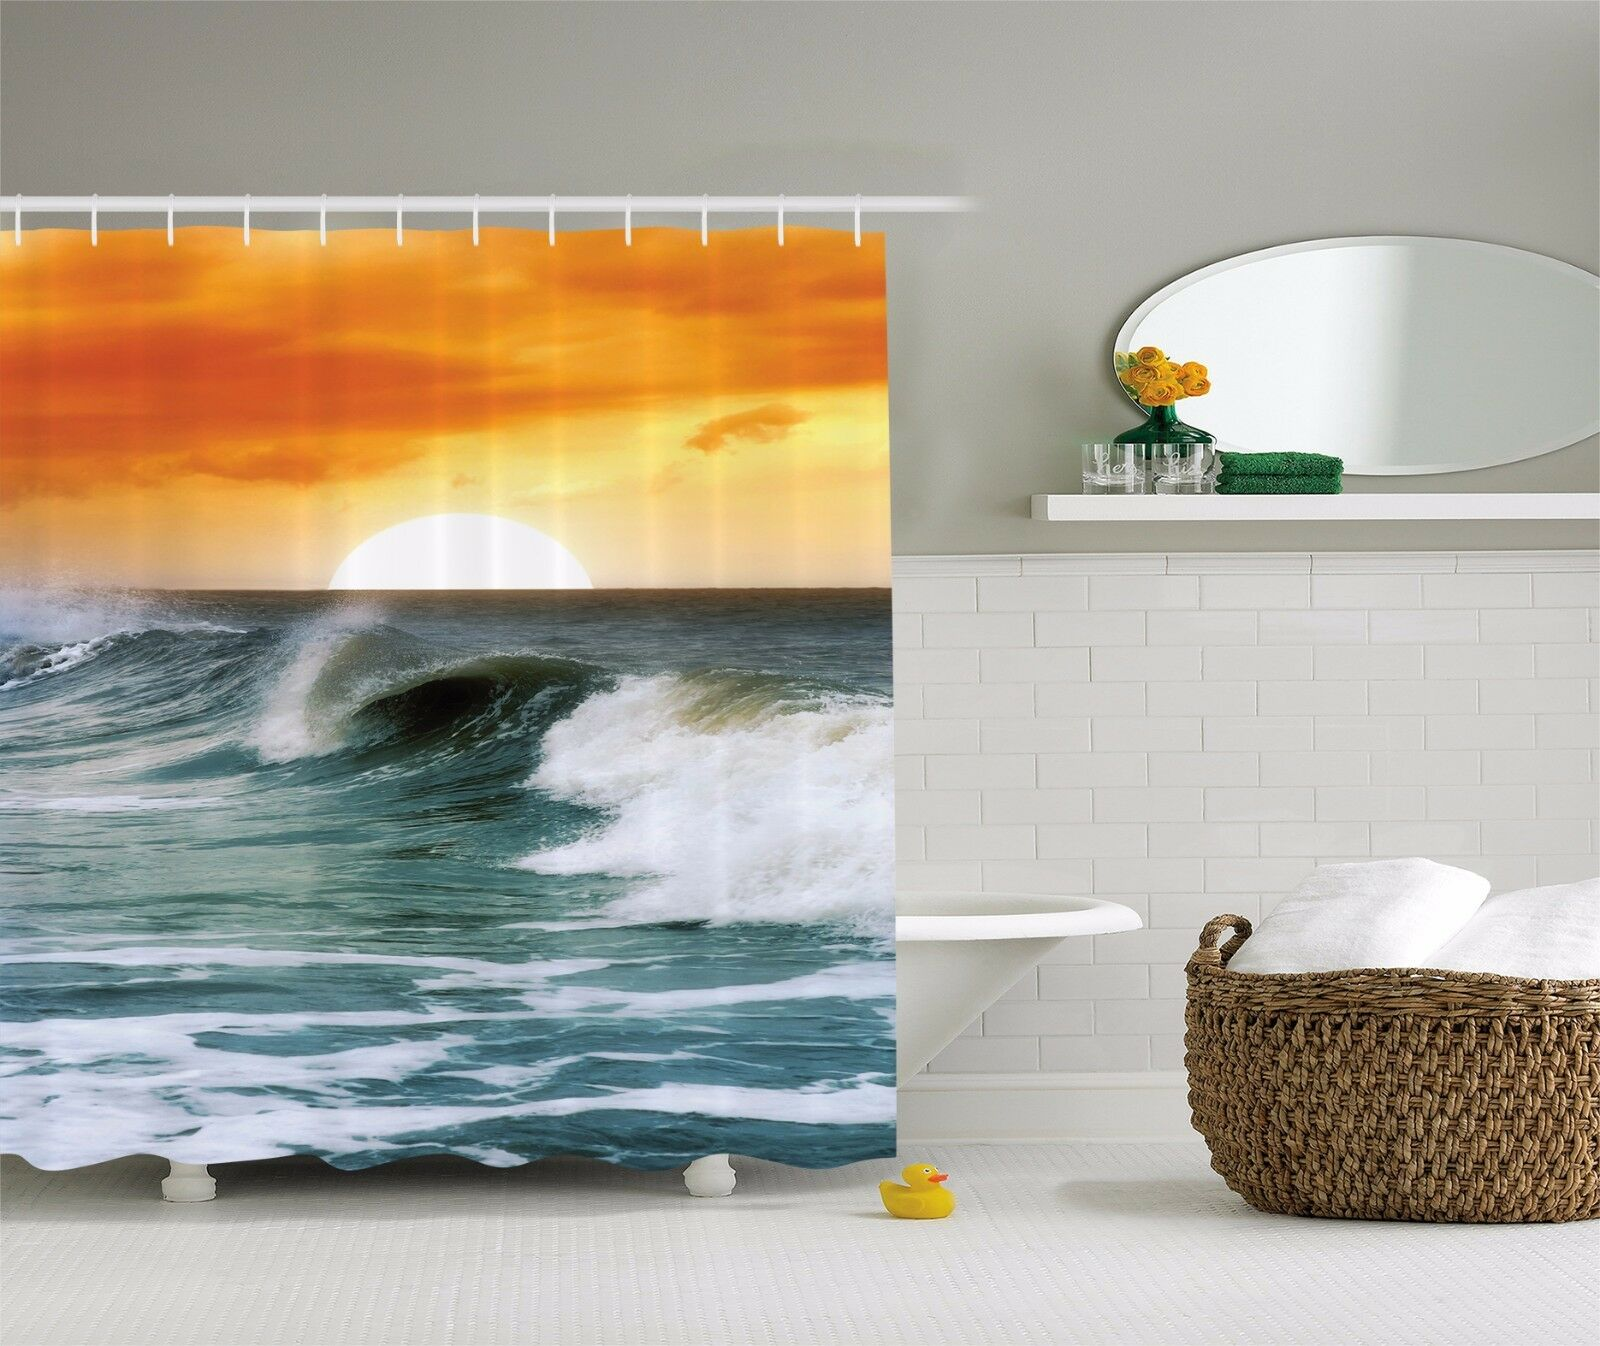 Ocean Waves Orange Sunset Surf Leisure Travel Shower Curtain Extra Long 84 Inch 5be54c